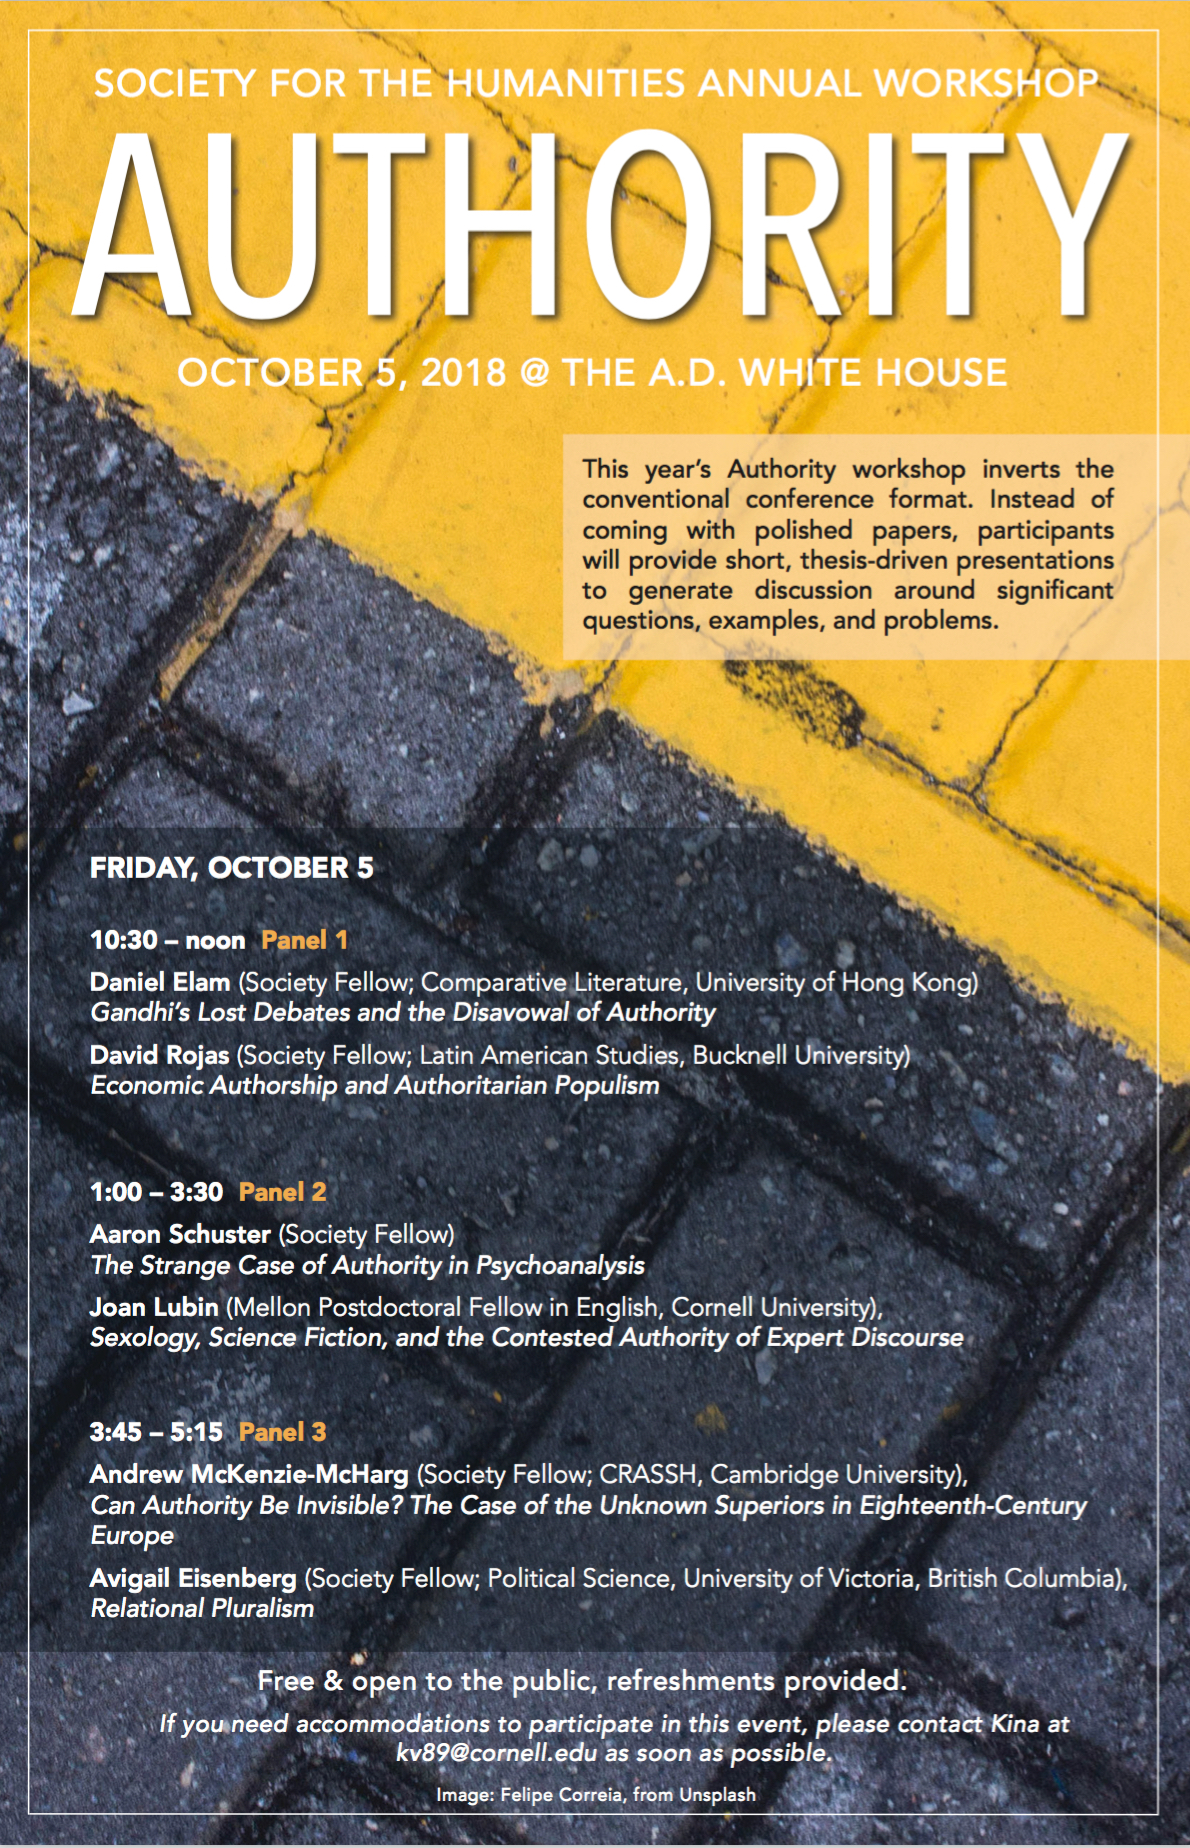 Society for the Humanities Annual Workshop: AUTHORITY